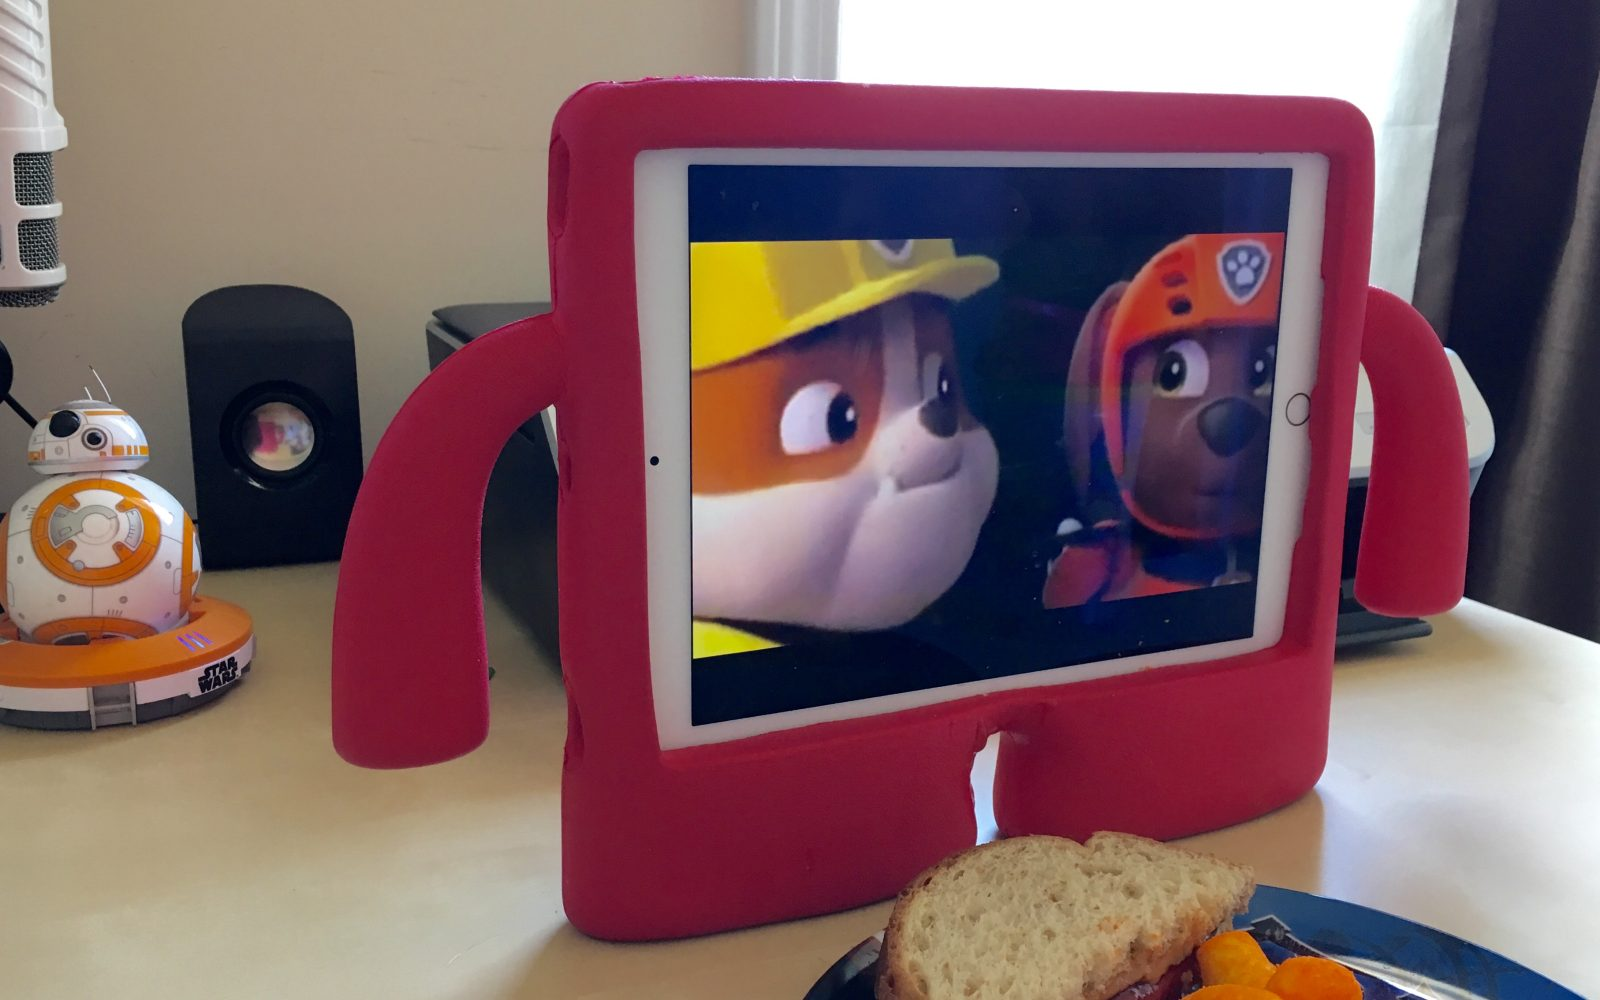 speck iguy  Review: Speck iGuy case is a must-have when kids inherit iPads - 9to5Mac